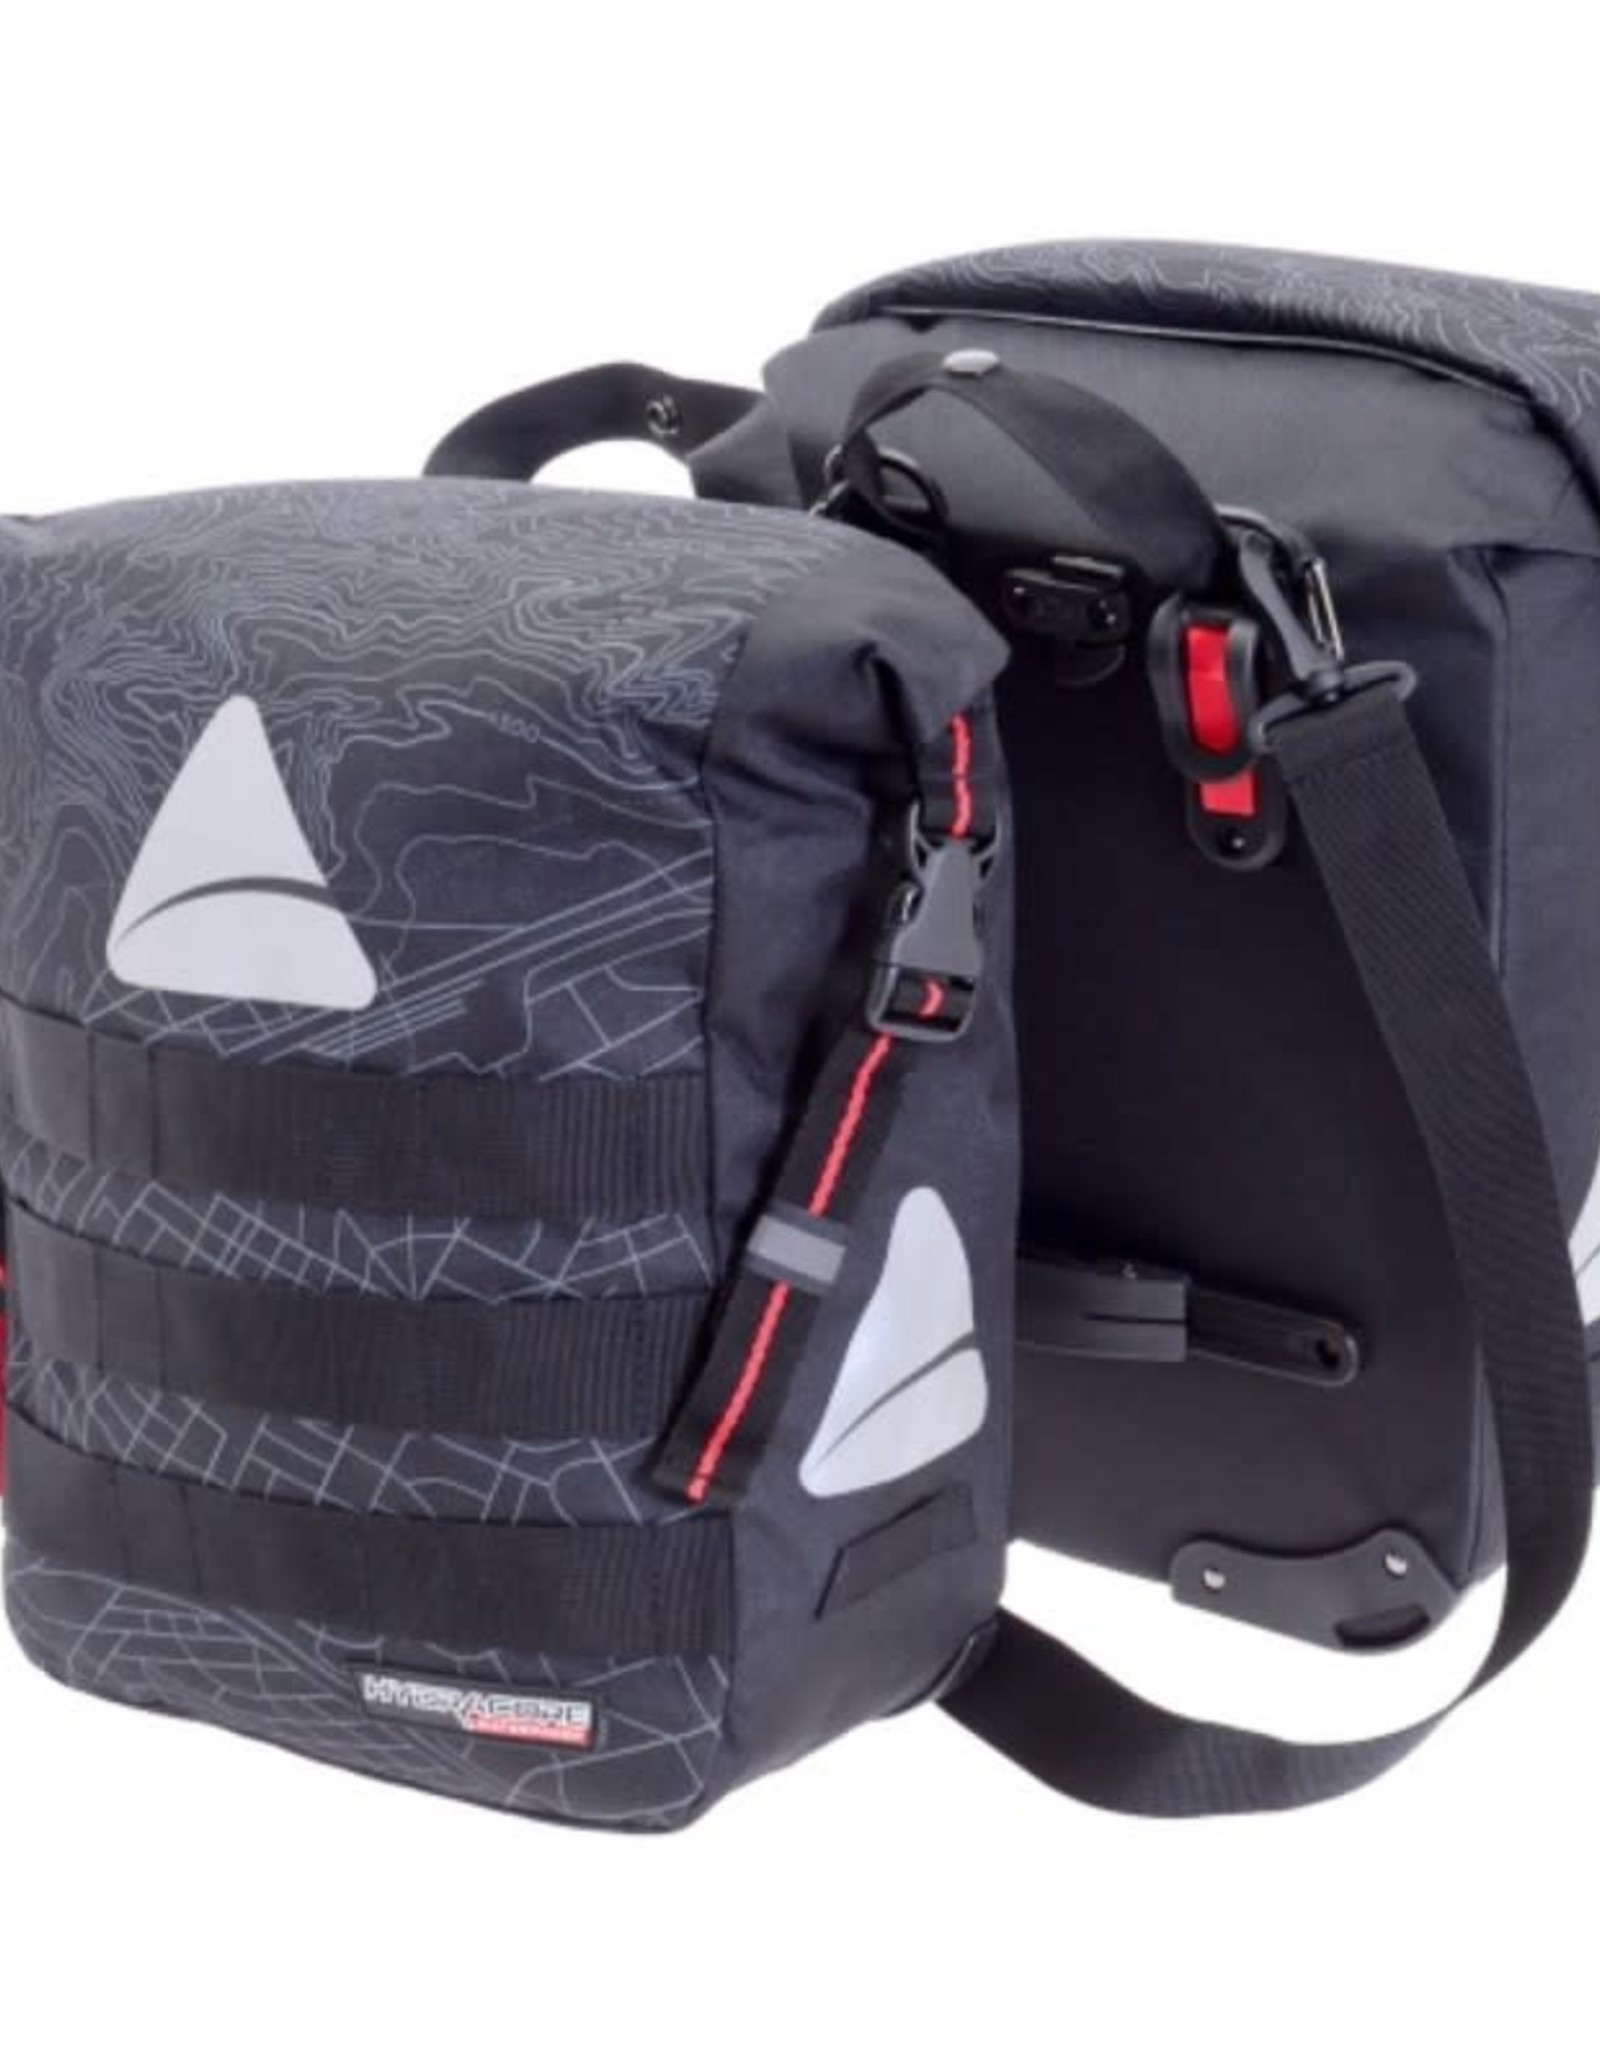 AXIOM AXIOM MONSOON HYDRACORE 32+ PAIR